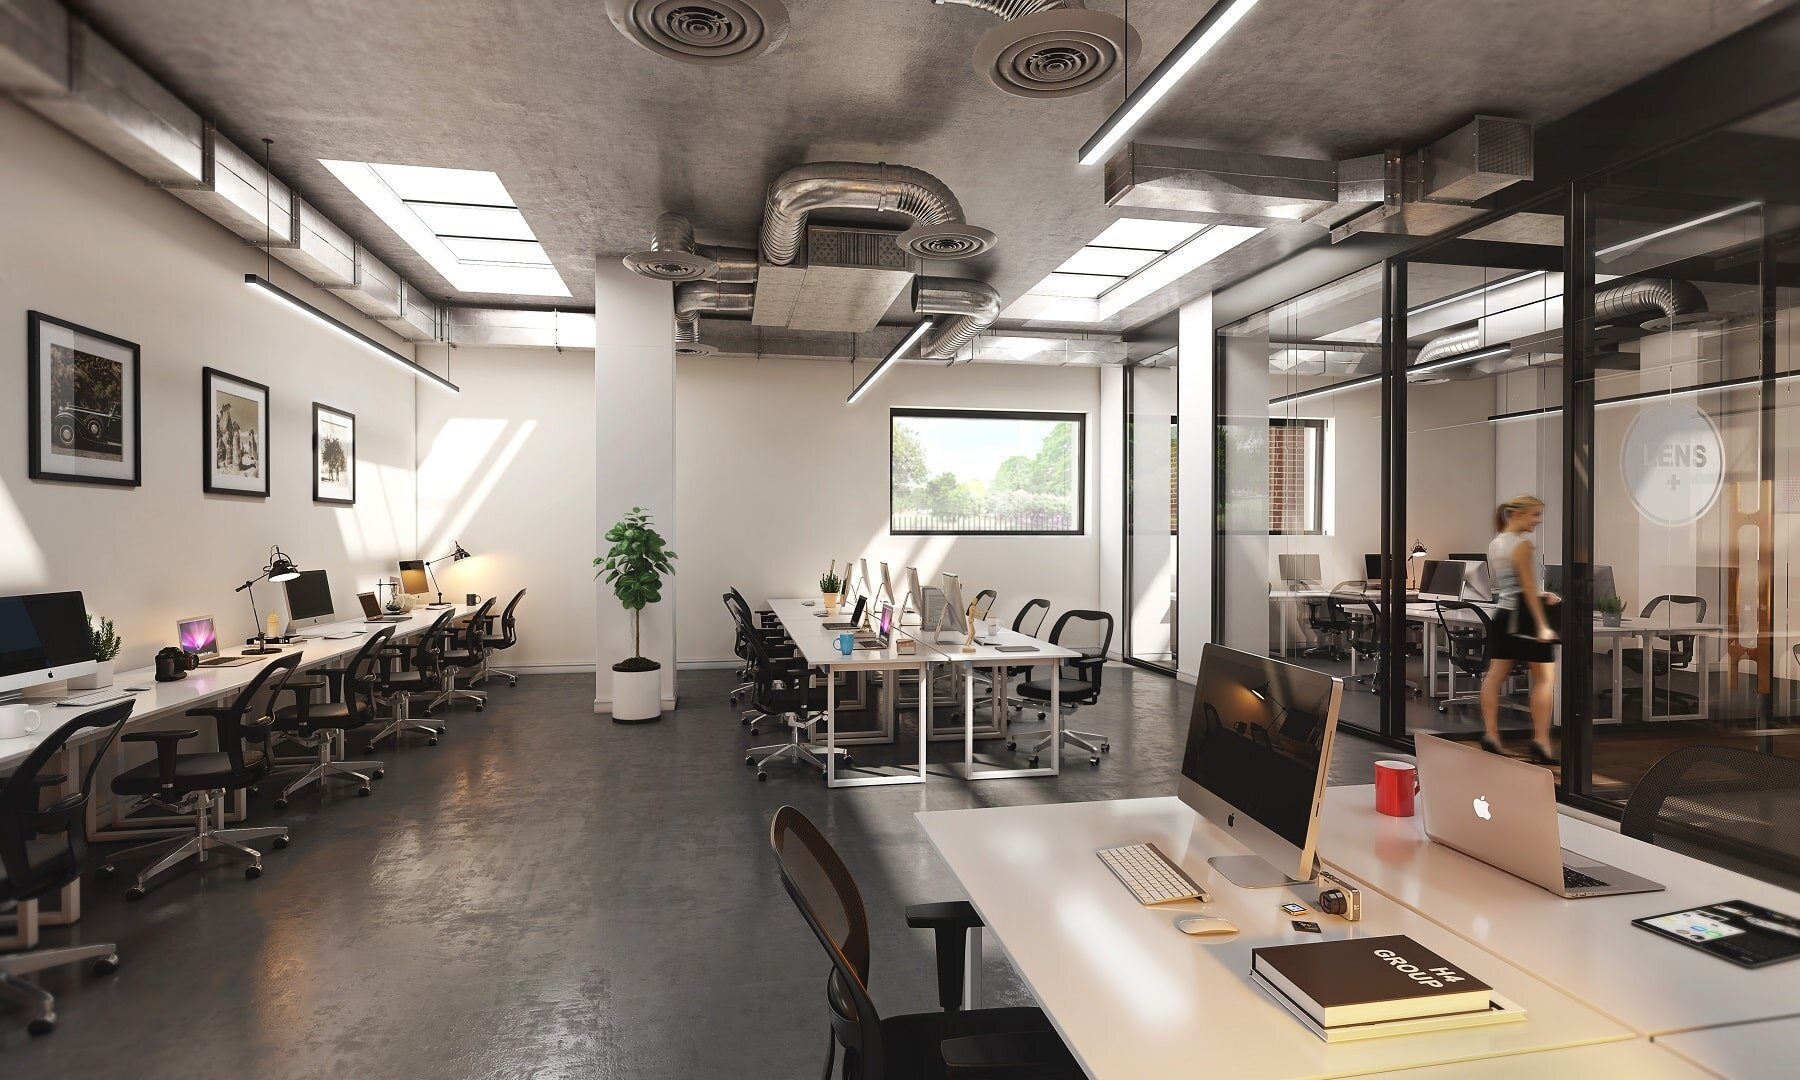 cgi-for-coworking-spaces-open-office-03-min.jpg